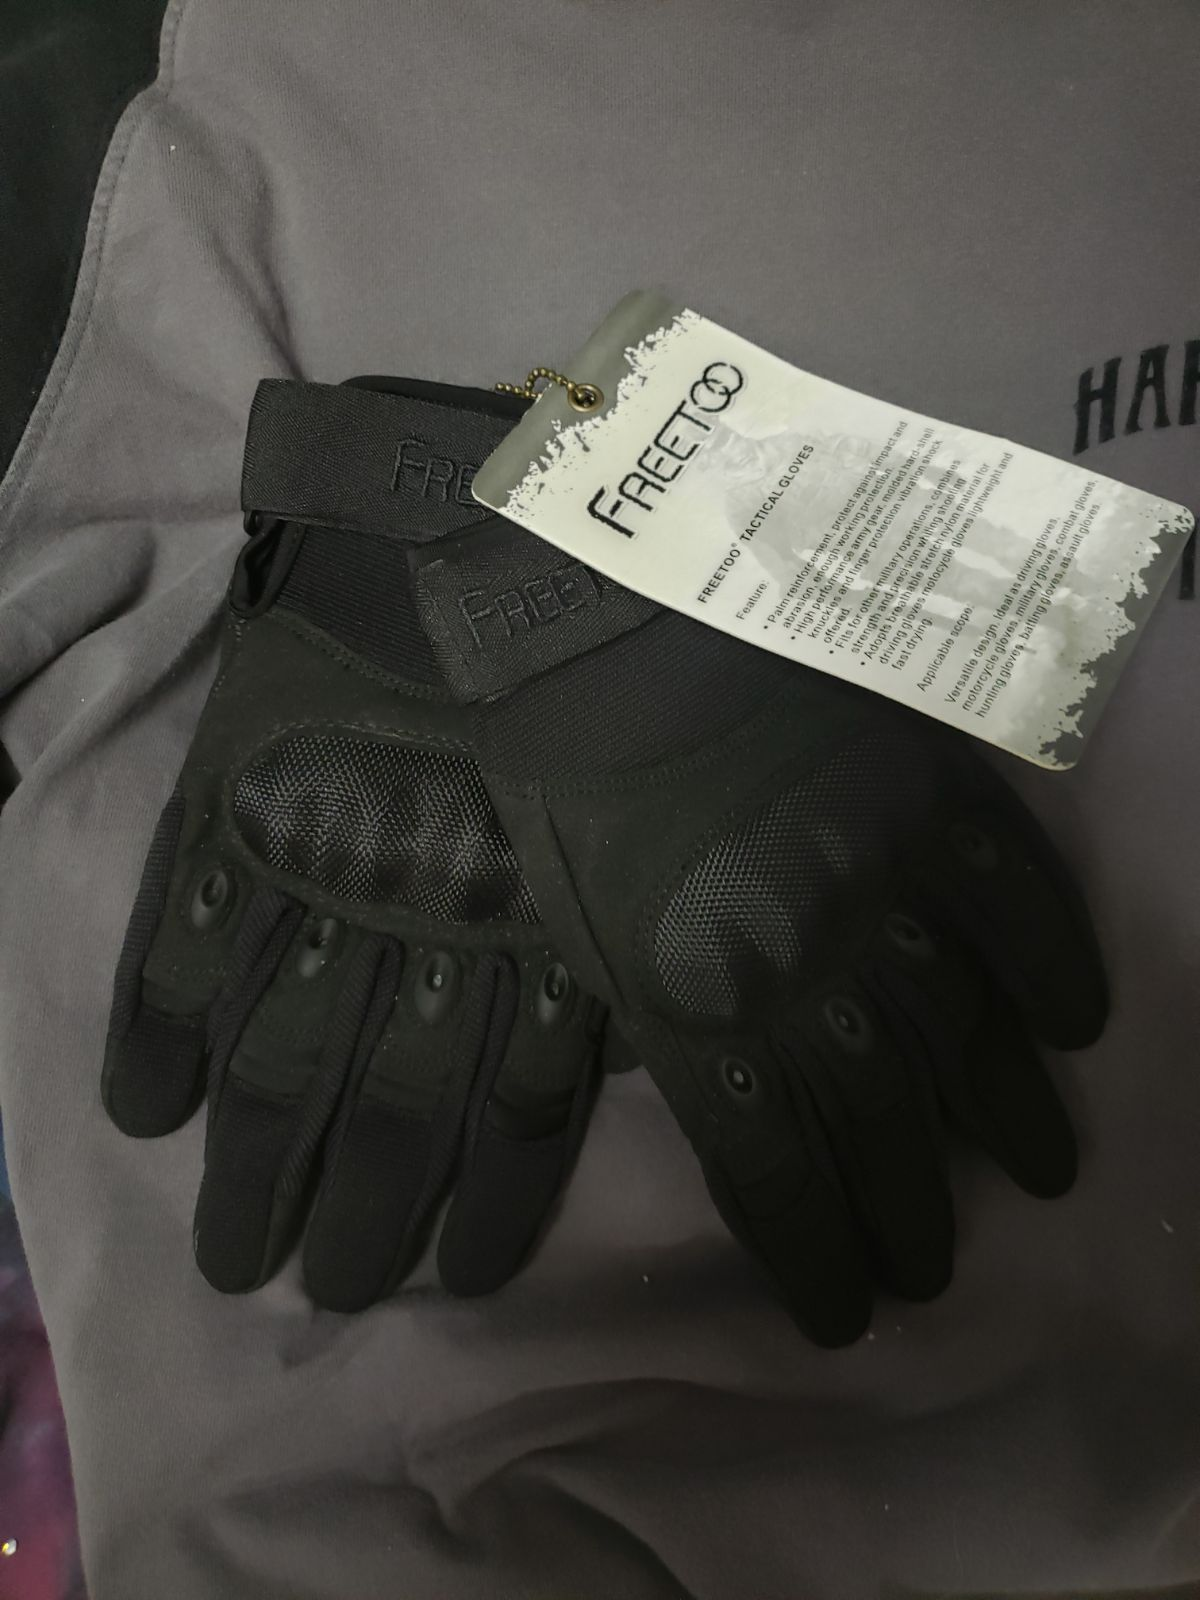 Freetco tactical gloves